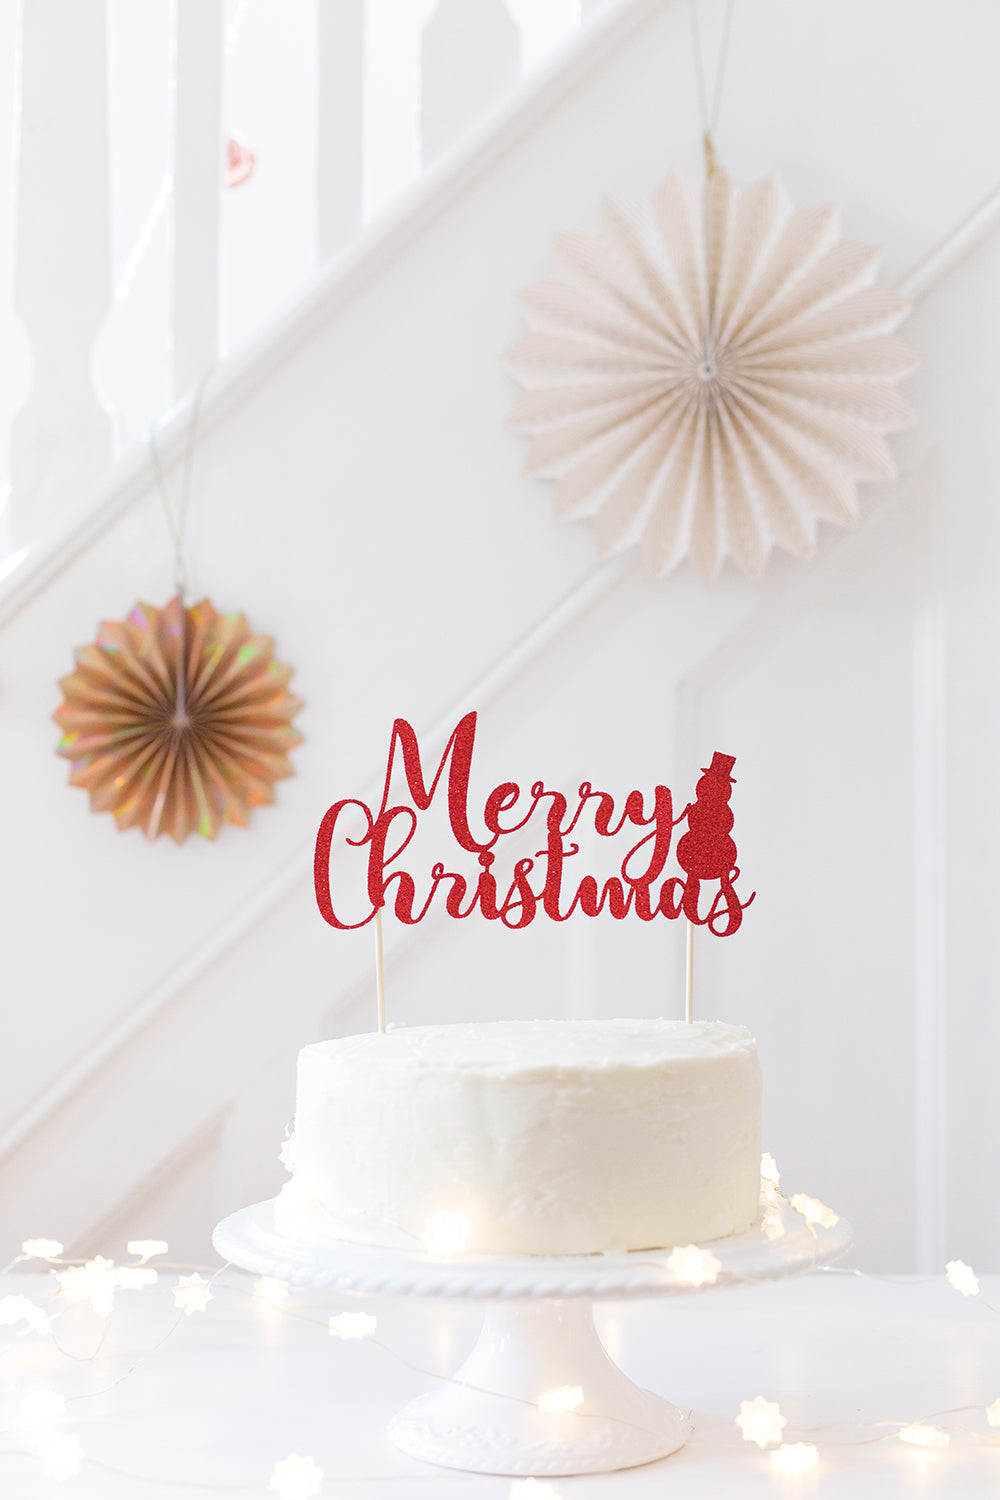 Merry Christmas Cake Topper | Christmas Decorations – Inspired by Alma